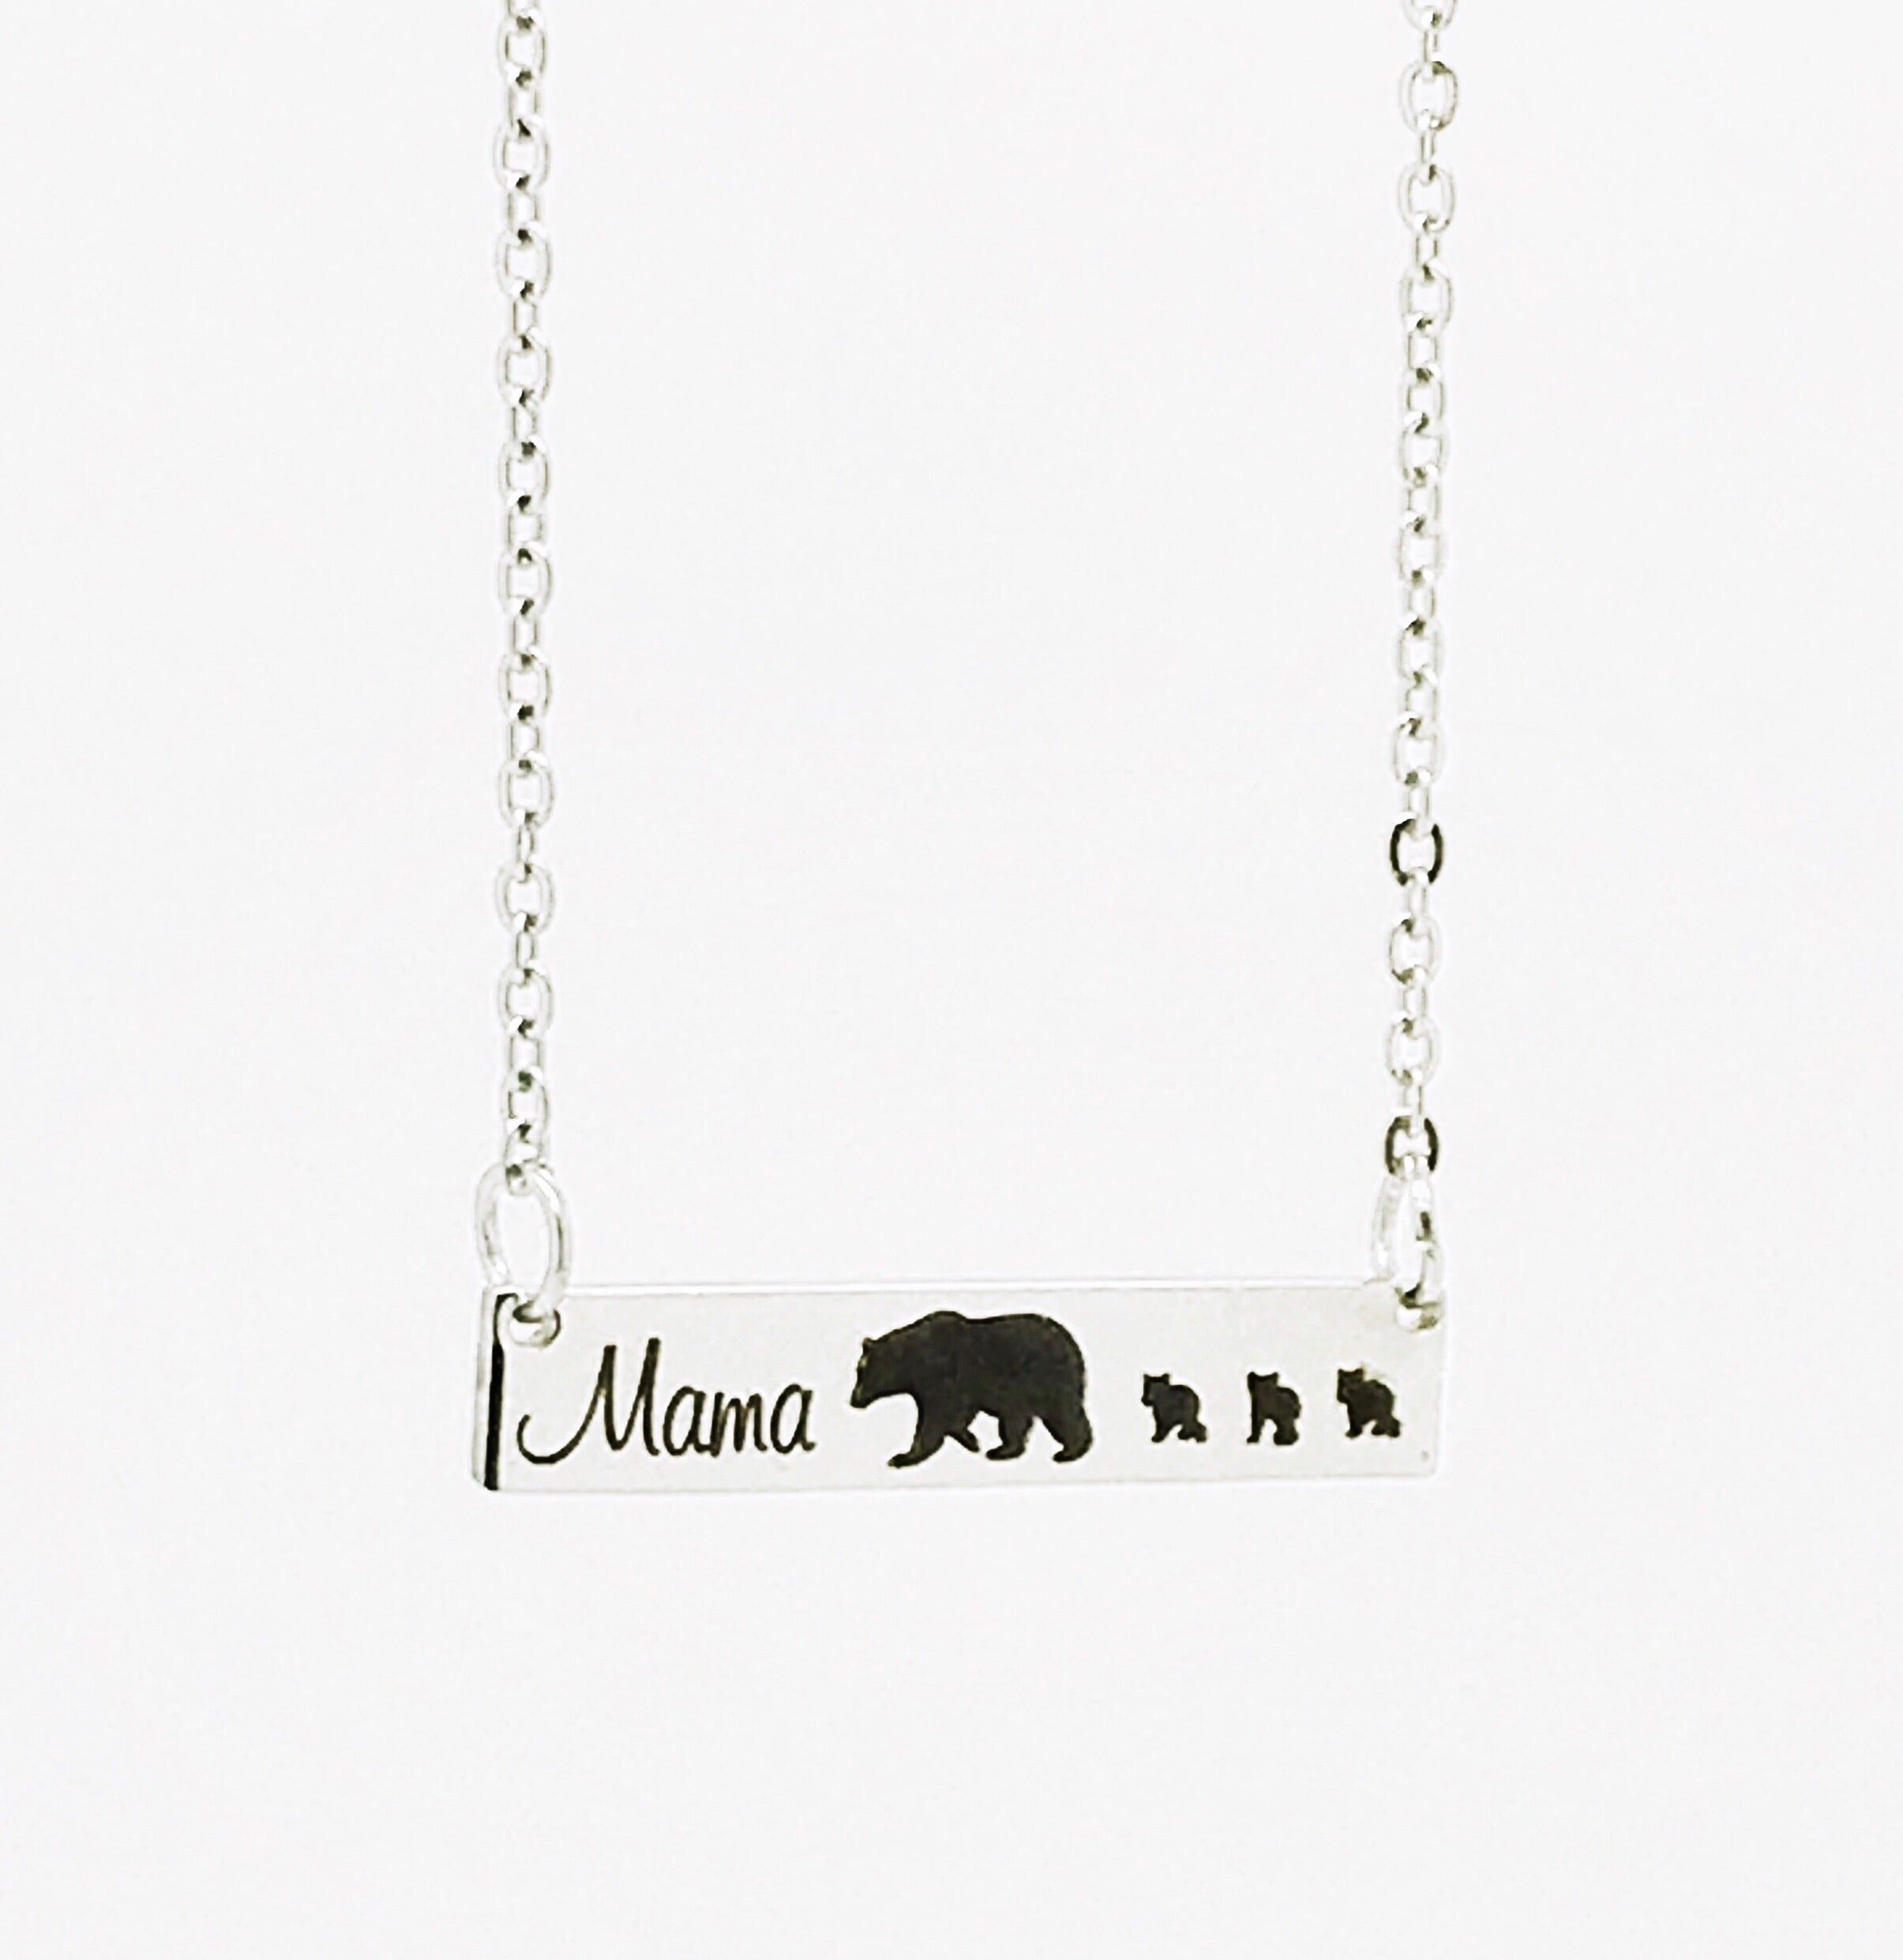 birthday valentine option gifts mom for wife necklace jewelry valentines day mama gift bear mother dp com amazon bar remembrance s